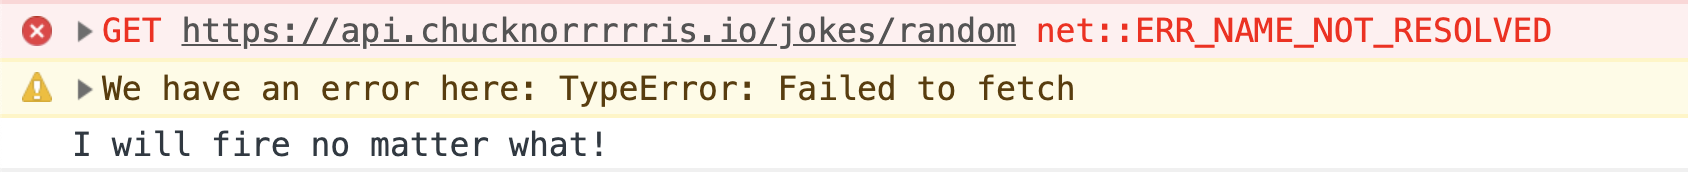 Console that has a failed GET request and then a warning that says We have an error here, Typeerror: failed to fetch, and then on a new line, Finally will fire no matter what!